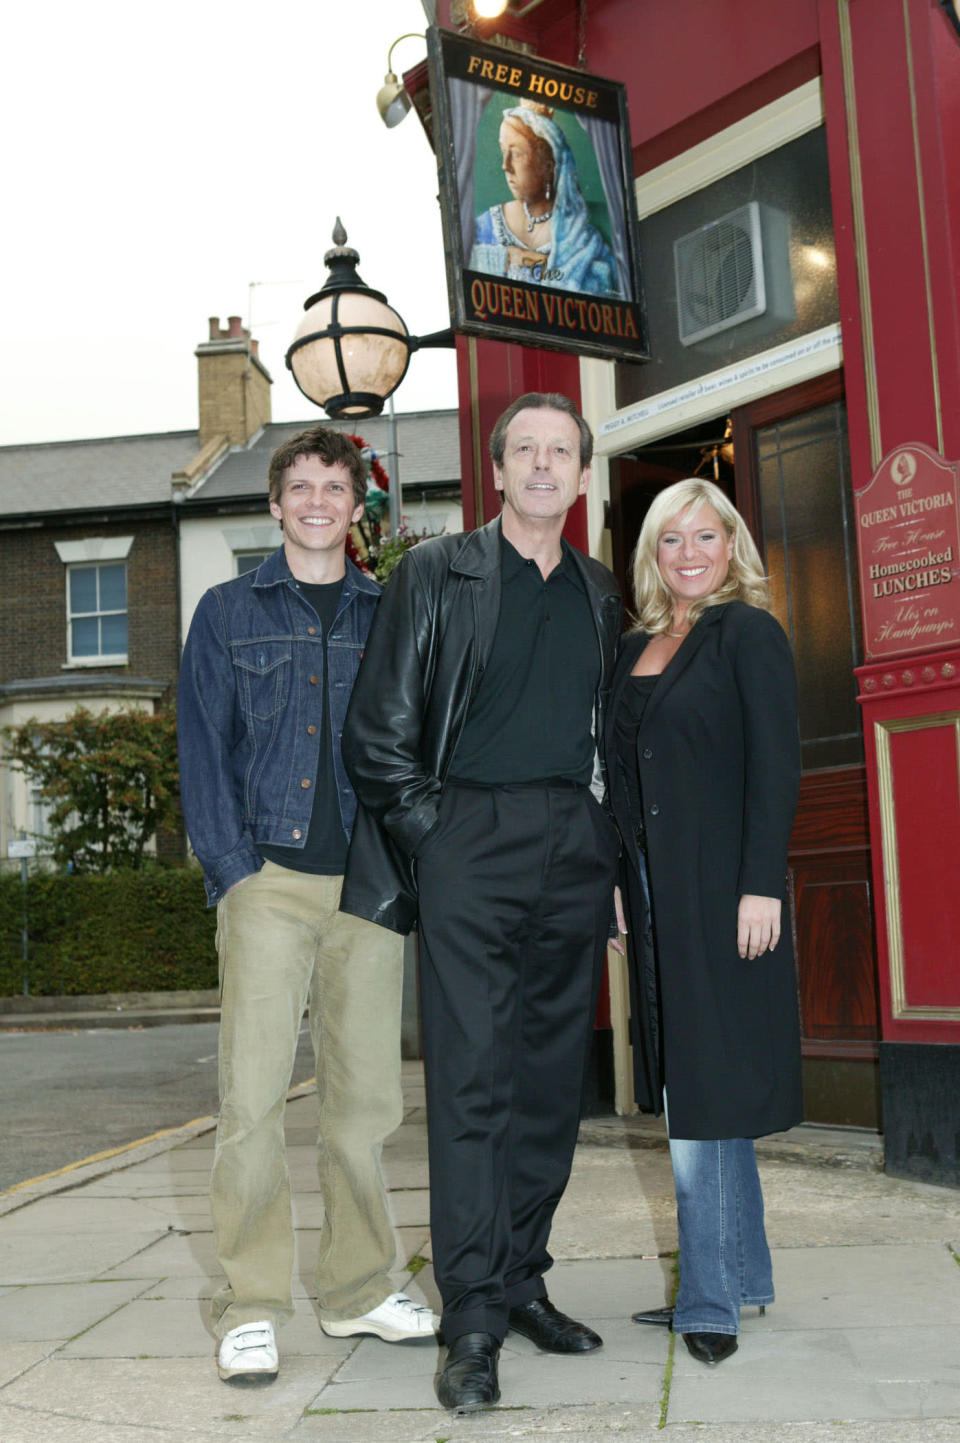 Leslie Grantham (C), Nigel Harman (L) and actress Letitia Dean pose outside the Queen Vic pub on the Eastenders set to promote their new storyline featuring the return of Dirty Den, at Elstree Studios on September 28, 2003 in London. (Photo by Rod Johnson/Getty Images)